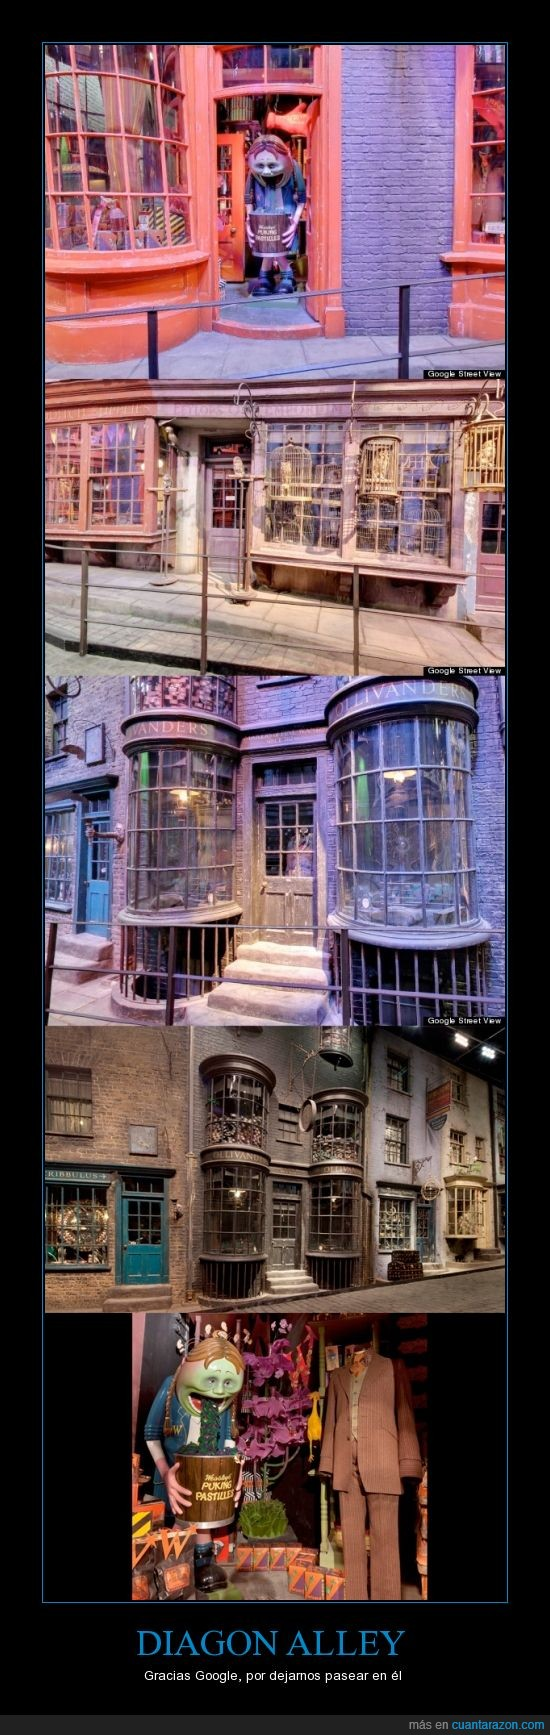 callejon diagon,google street view,harry potter